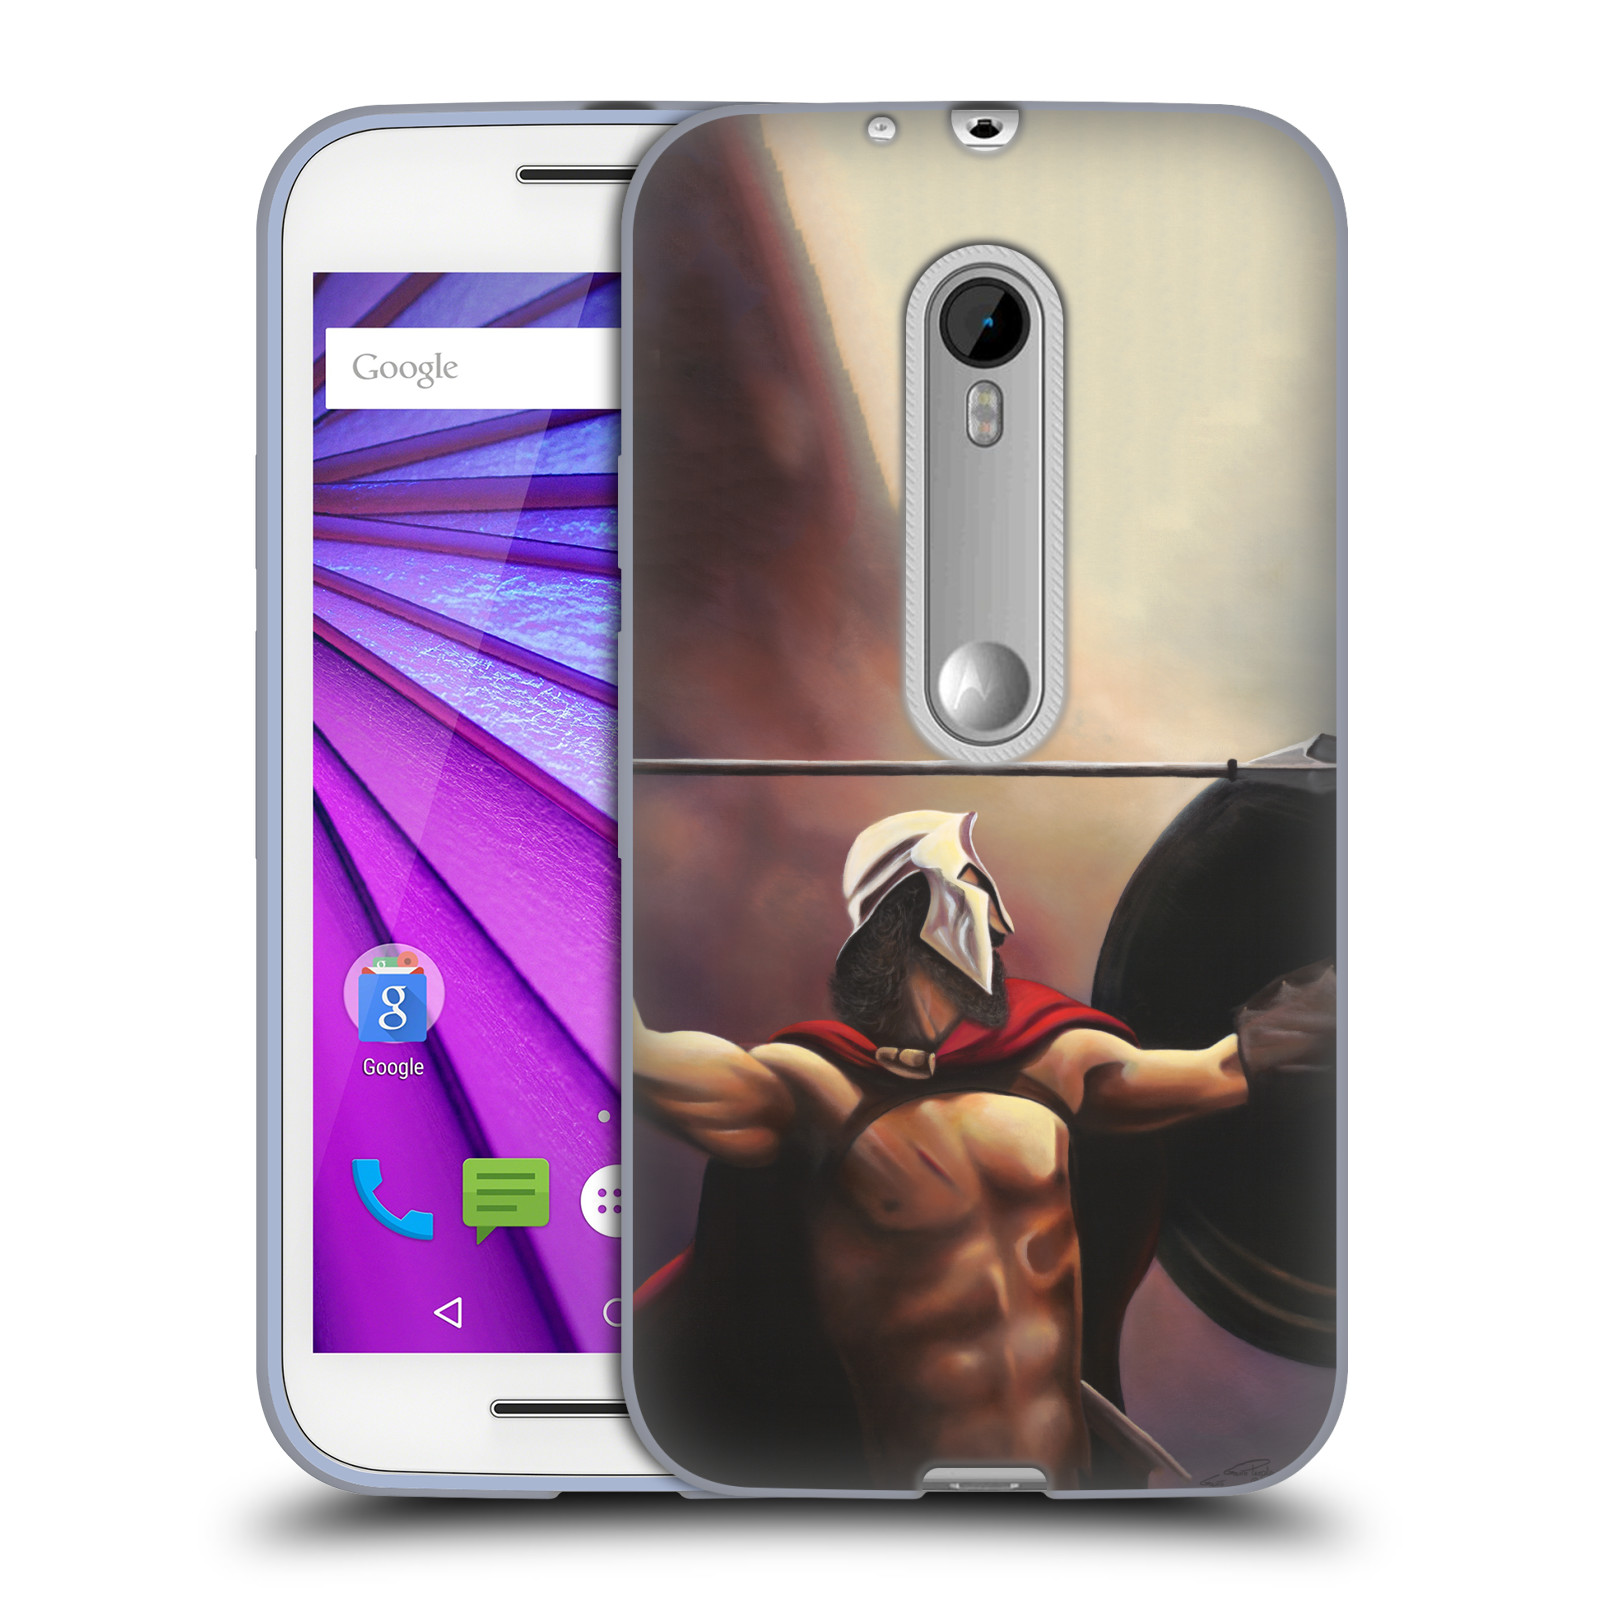 UFFICIALE-GENO-PEOPLES-ART-VITA-COVER-MORBIDA-IN-GEL-PER-MOTOROLA-TELEFONI-2